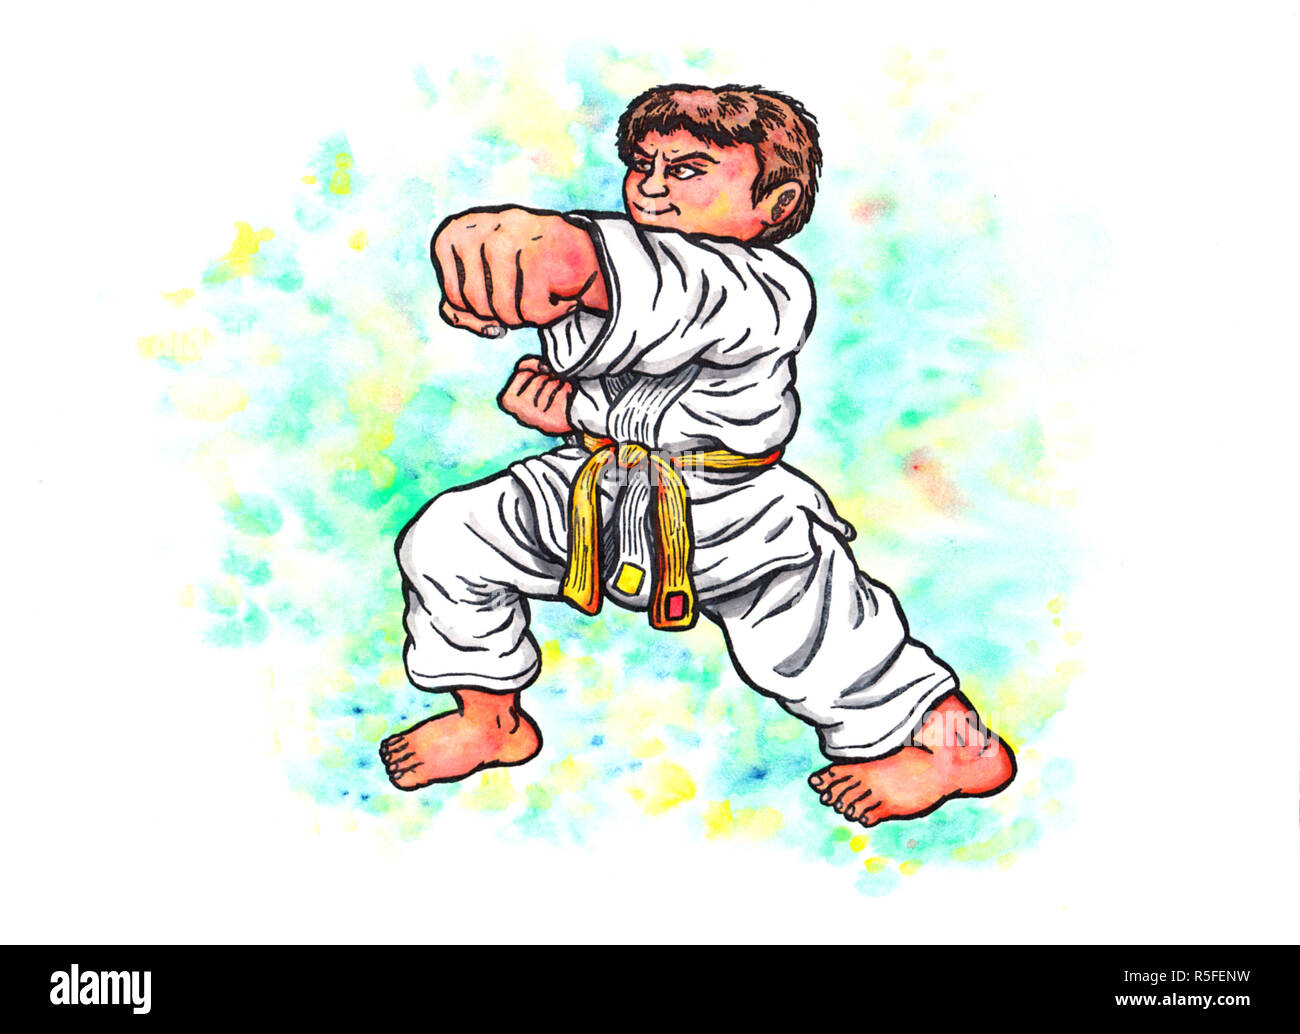 an abstract colorful watercolor cartoon illustration of a young boy wearing a karate suit with a yellow belt, smiling confidently and doing a punch  the entire image is hand drawn with ink and colored with watercolor and the blurring is intended - Stock Image